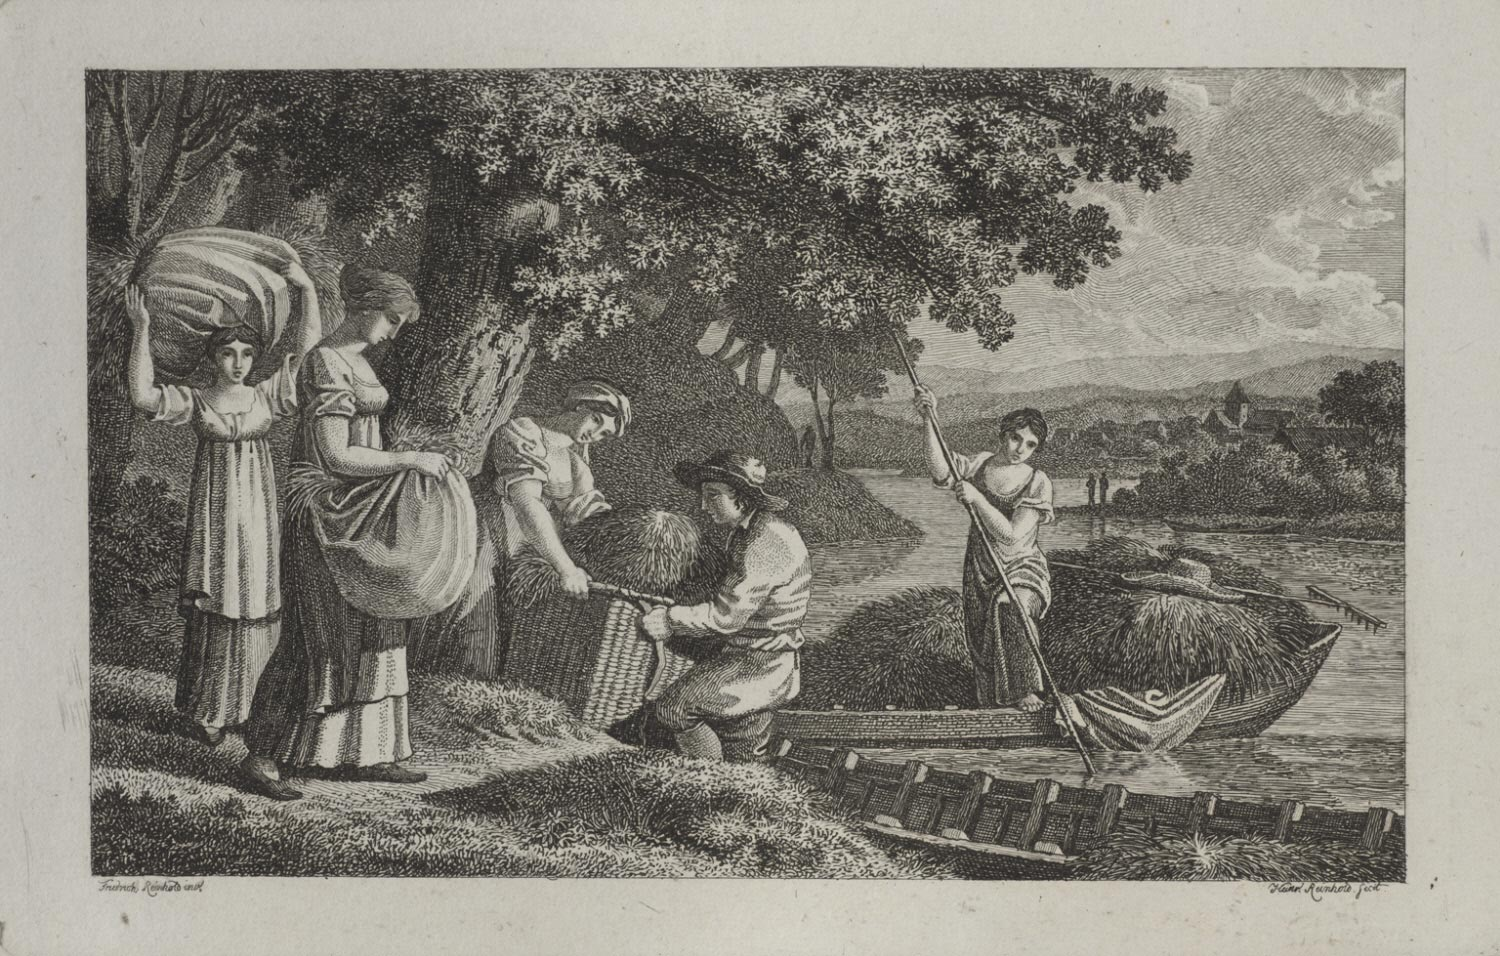 A Group of Peasants Loading Hay into Boats